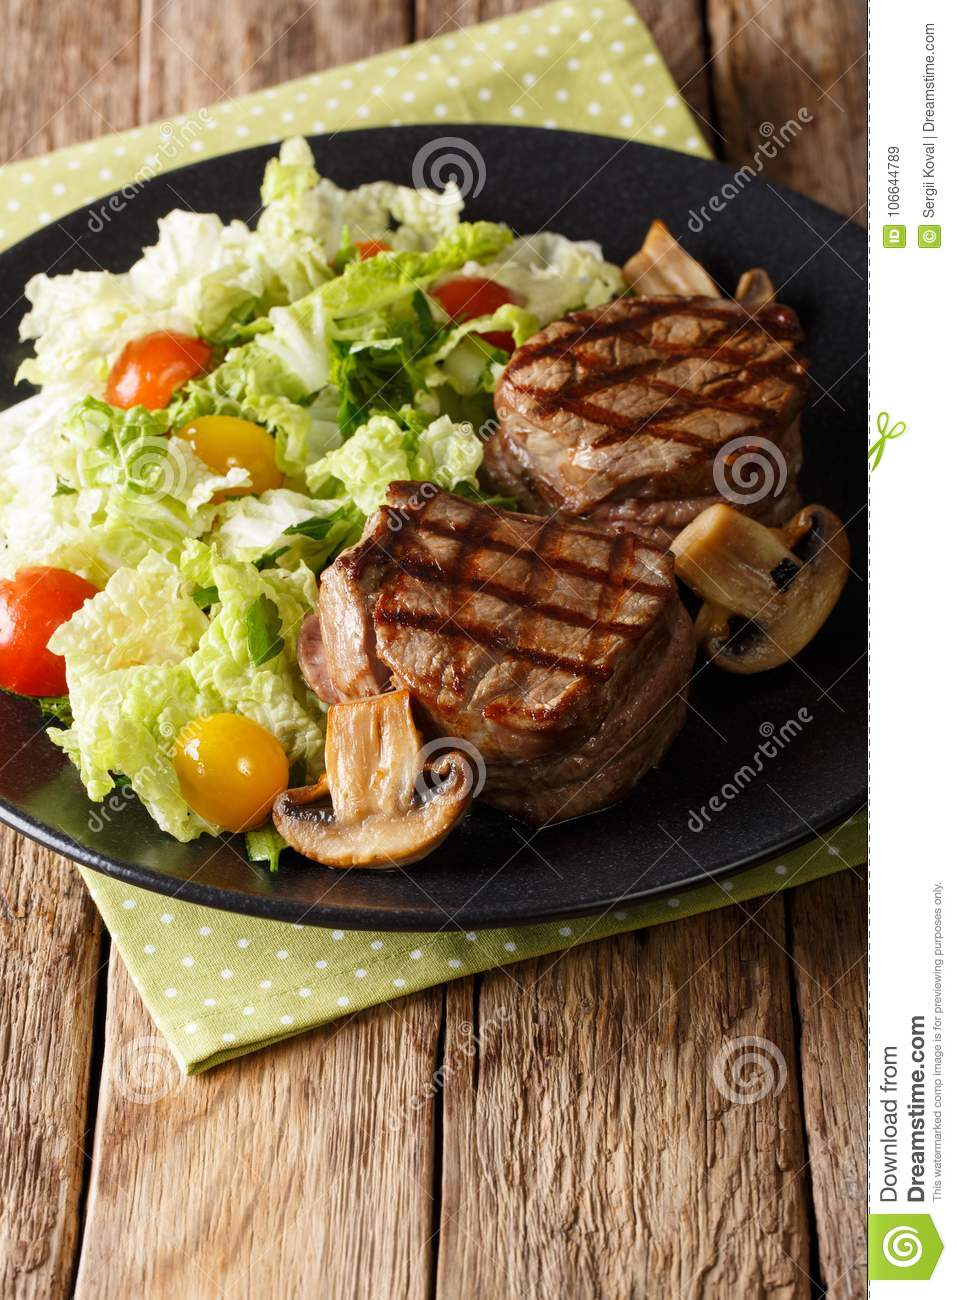 Grilled filet mignon steak with vegetable salad and mushrooms cl